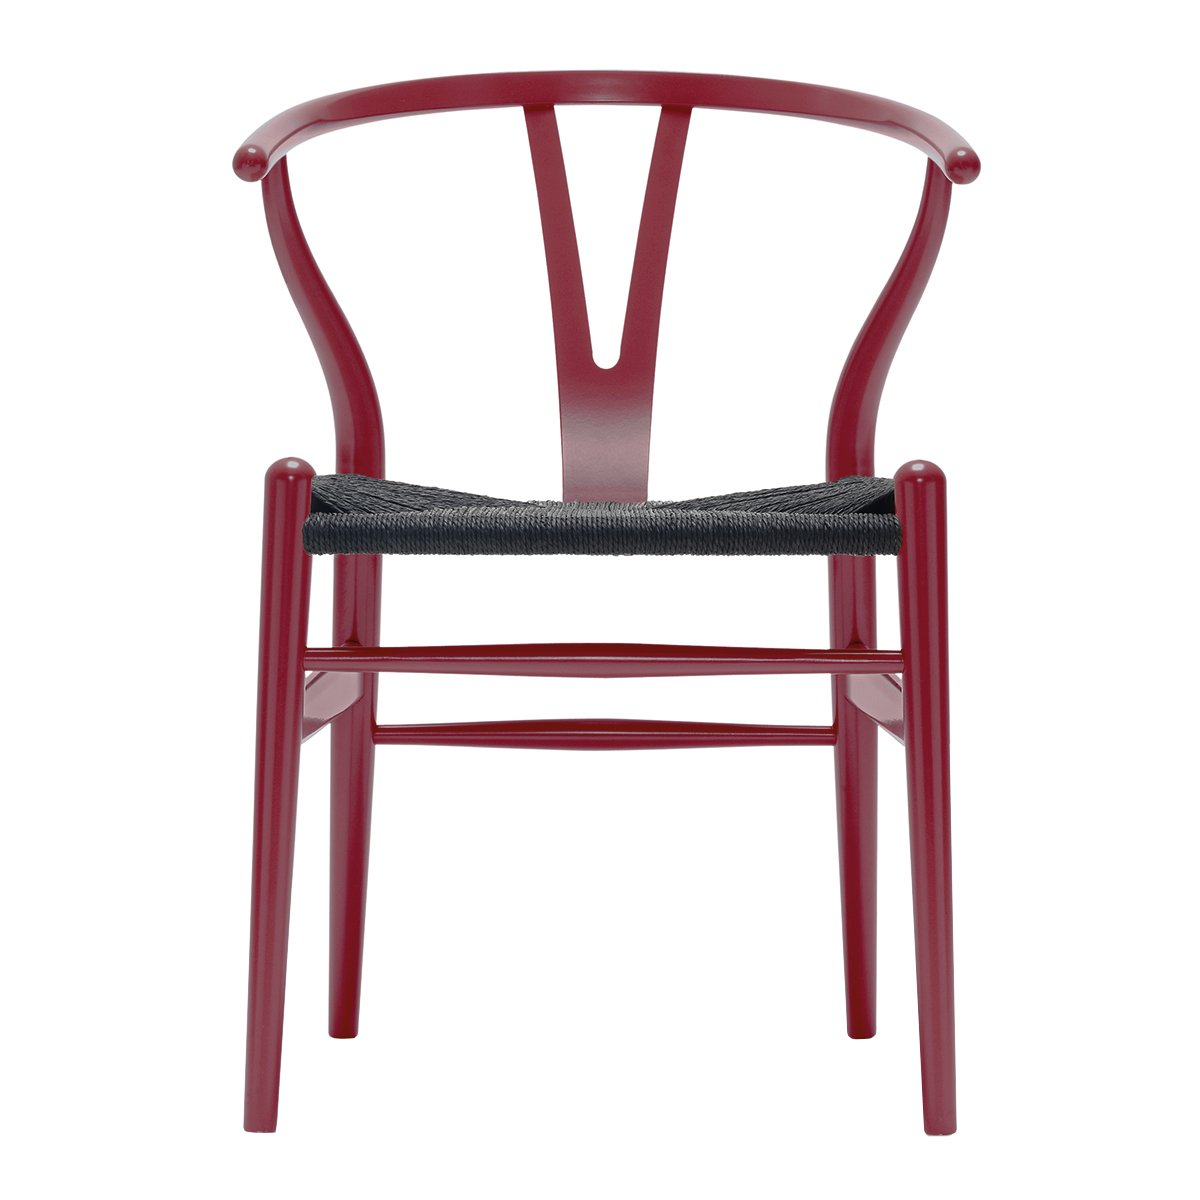 Carl Hansen Wishbone Chair NCS S4550-Y80R - Zwart